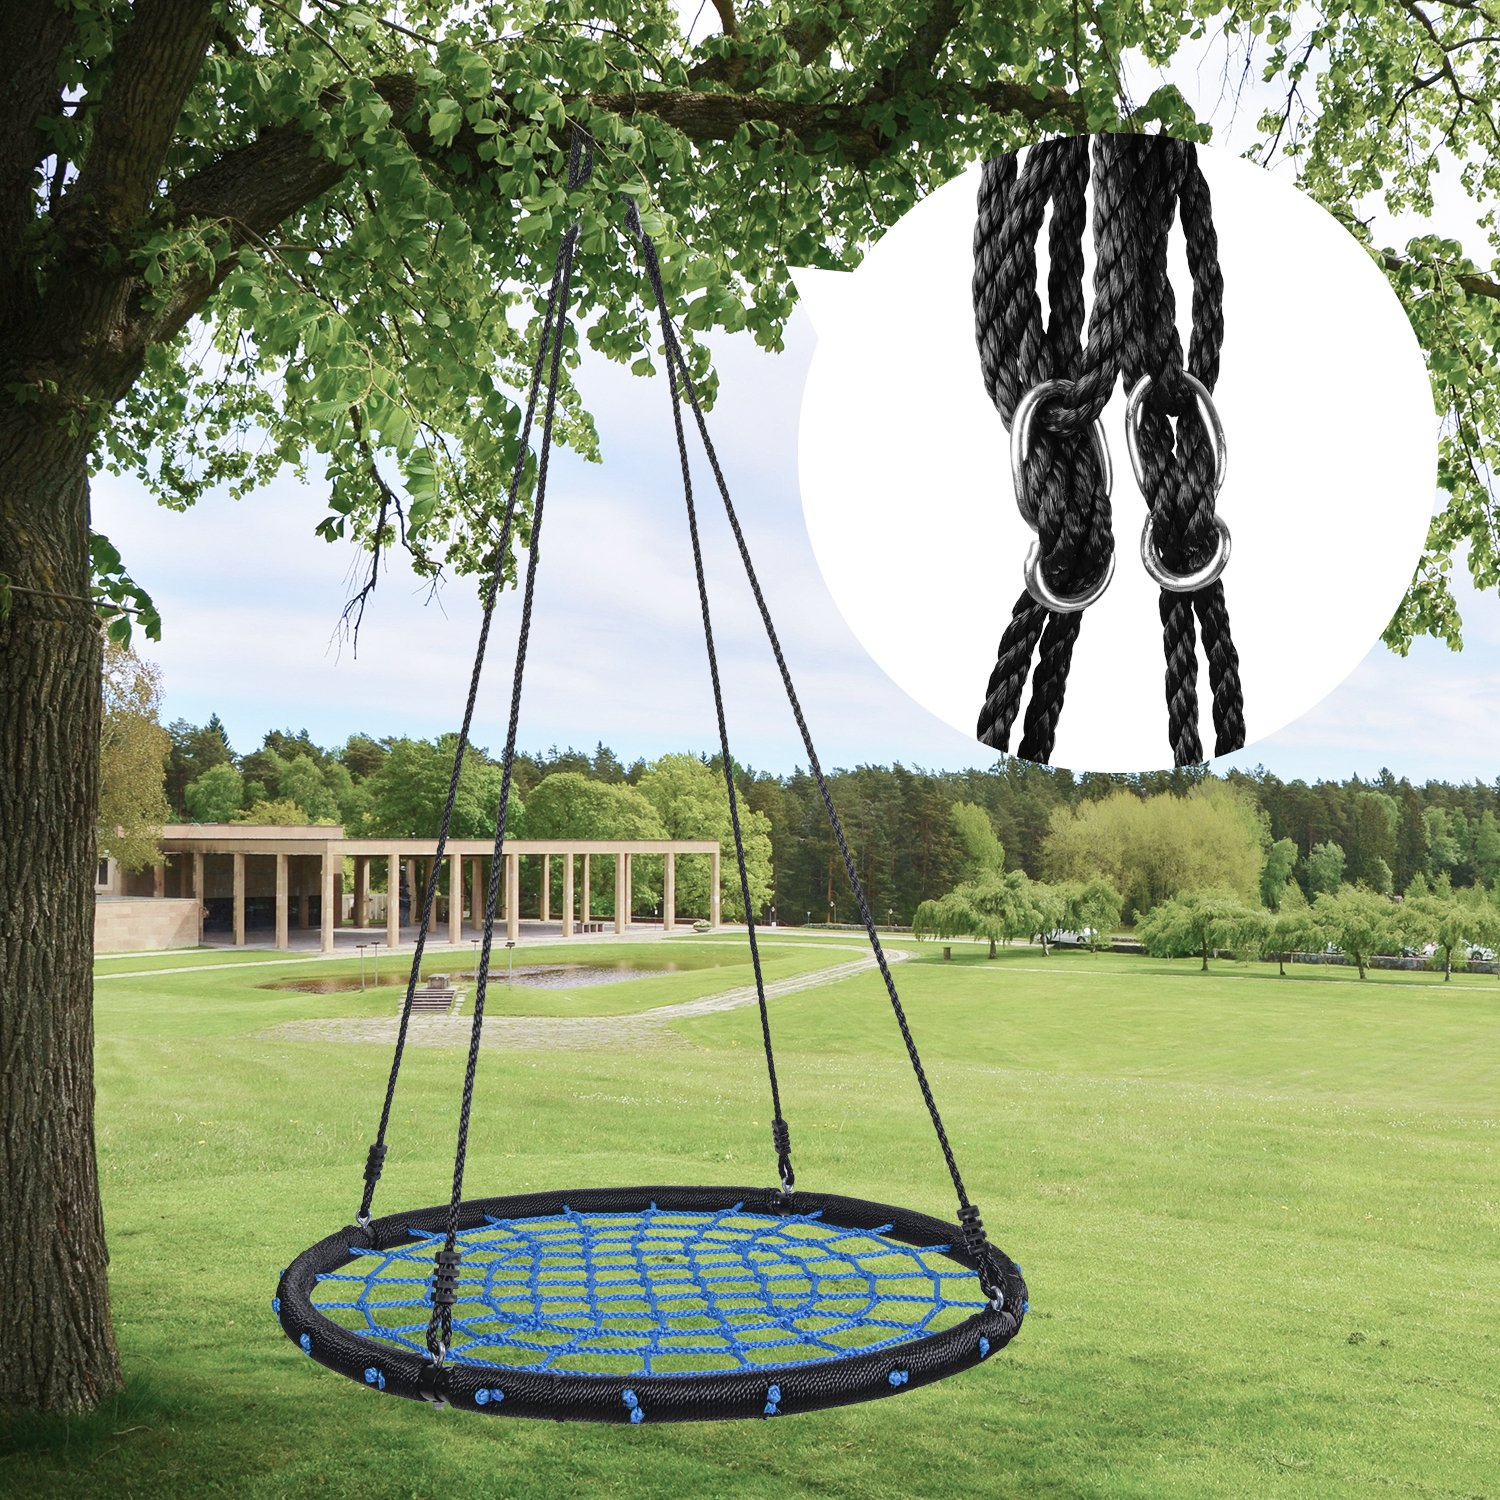 "HYCLAT 40"" Giant Saucer Tree Swing Flying Squirrel Spider Web Tree Swing Outdoor Indoor Toy Playground Swing"